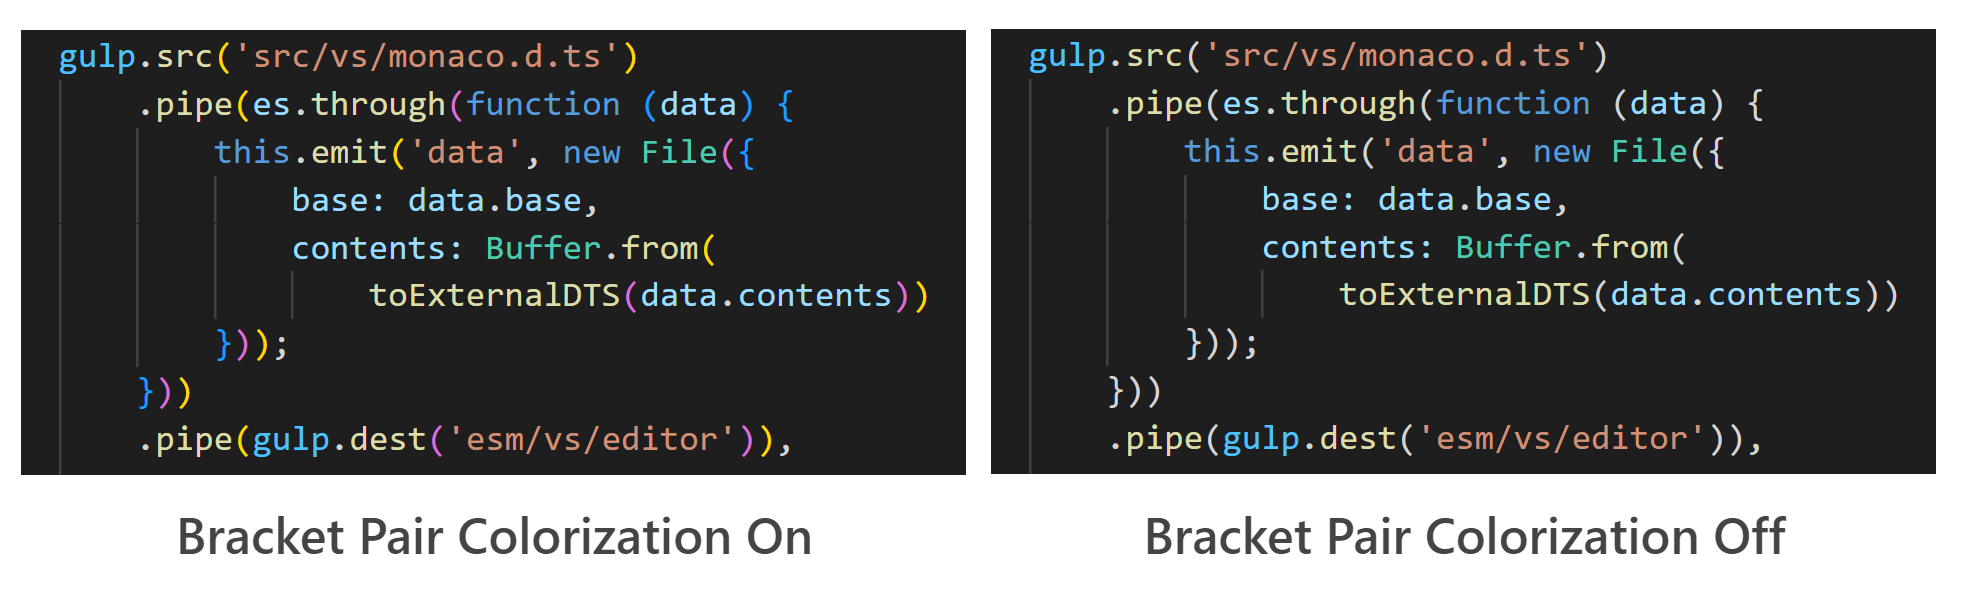 Side by side comparison with bracket pair colorization on and off